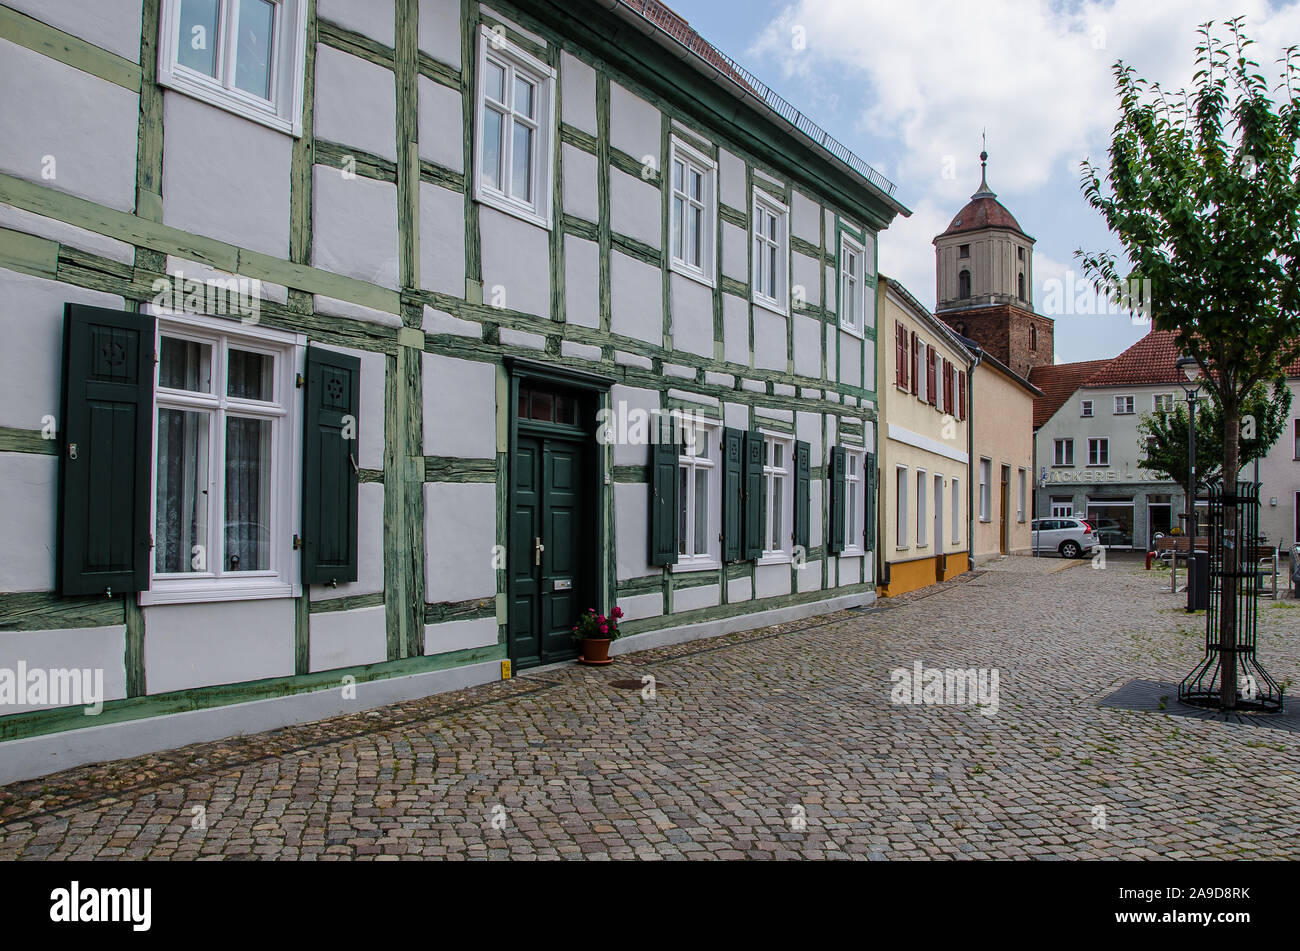 "The idyllic town of Treuenbrietzen, with its medieval town Centre, is situated in the northern edge of the glacial land ridge called ""Niederer Fläming Stock Photo"